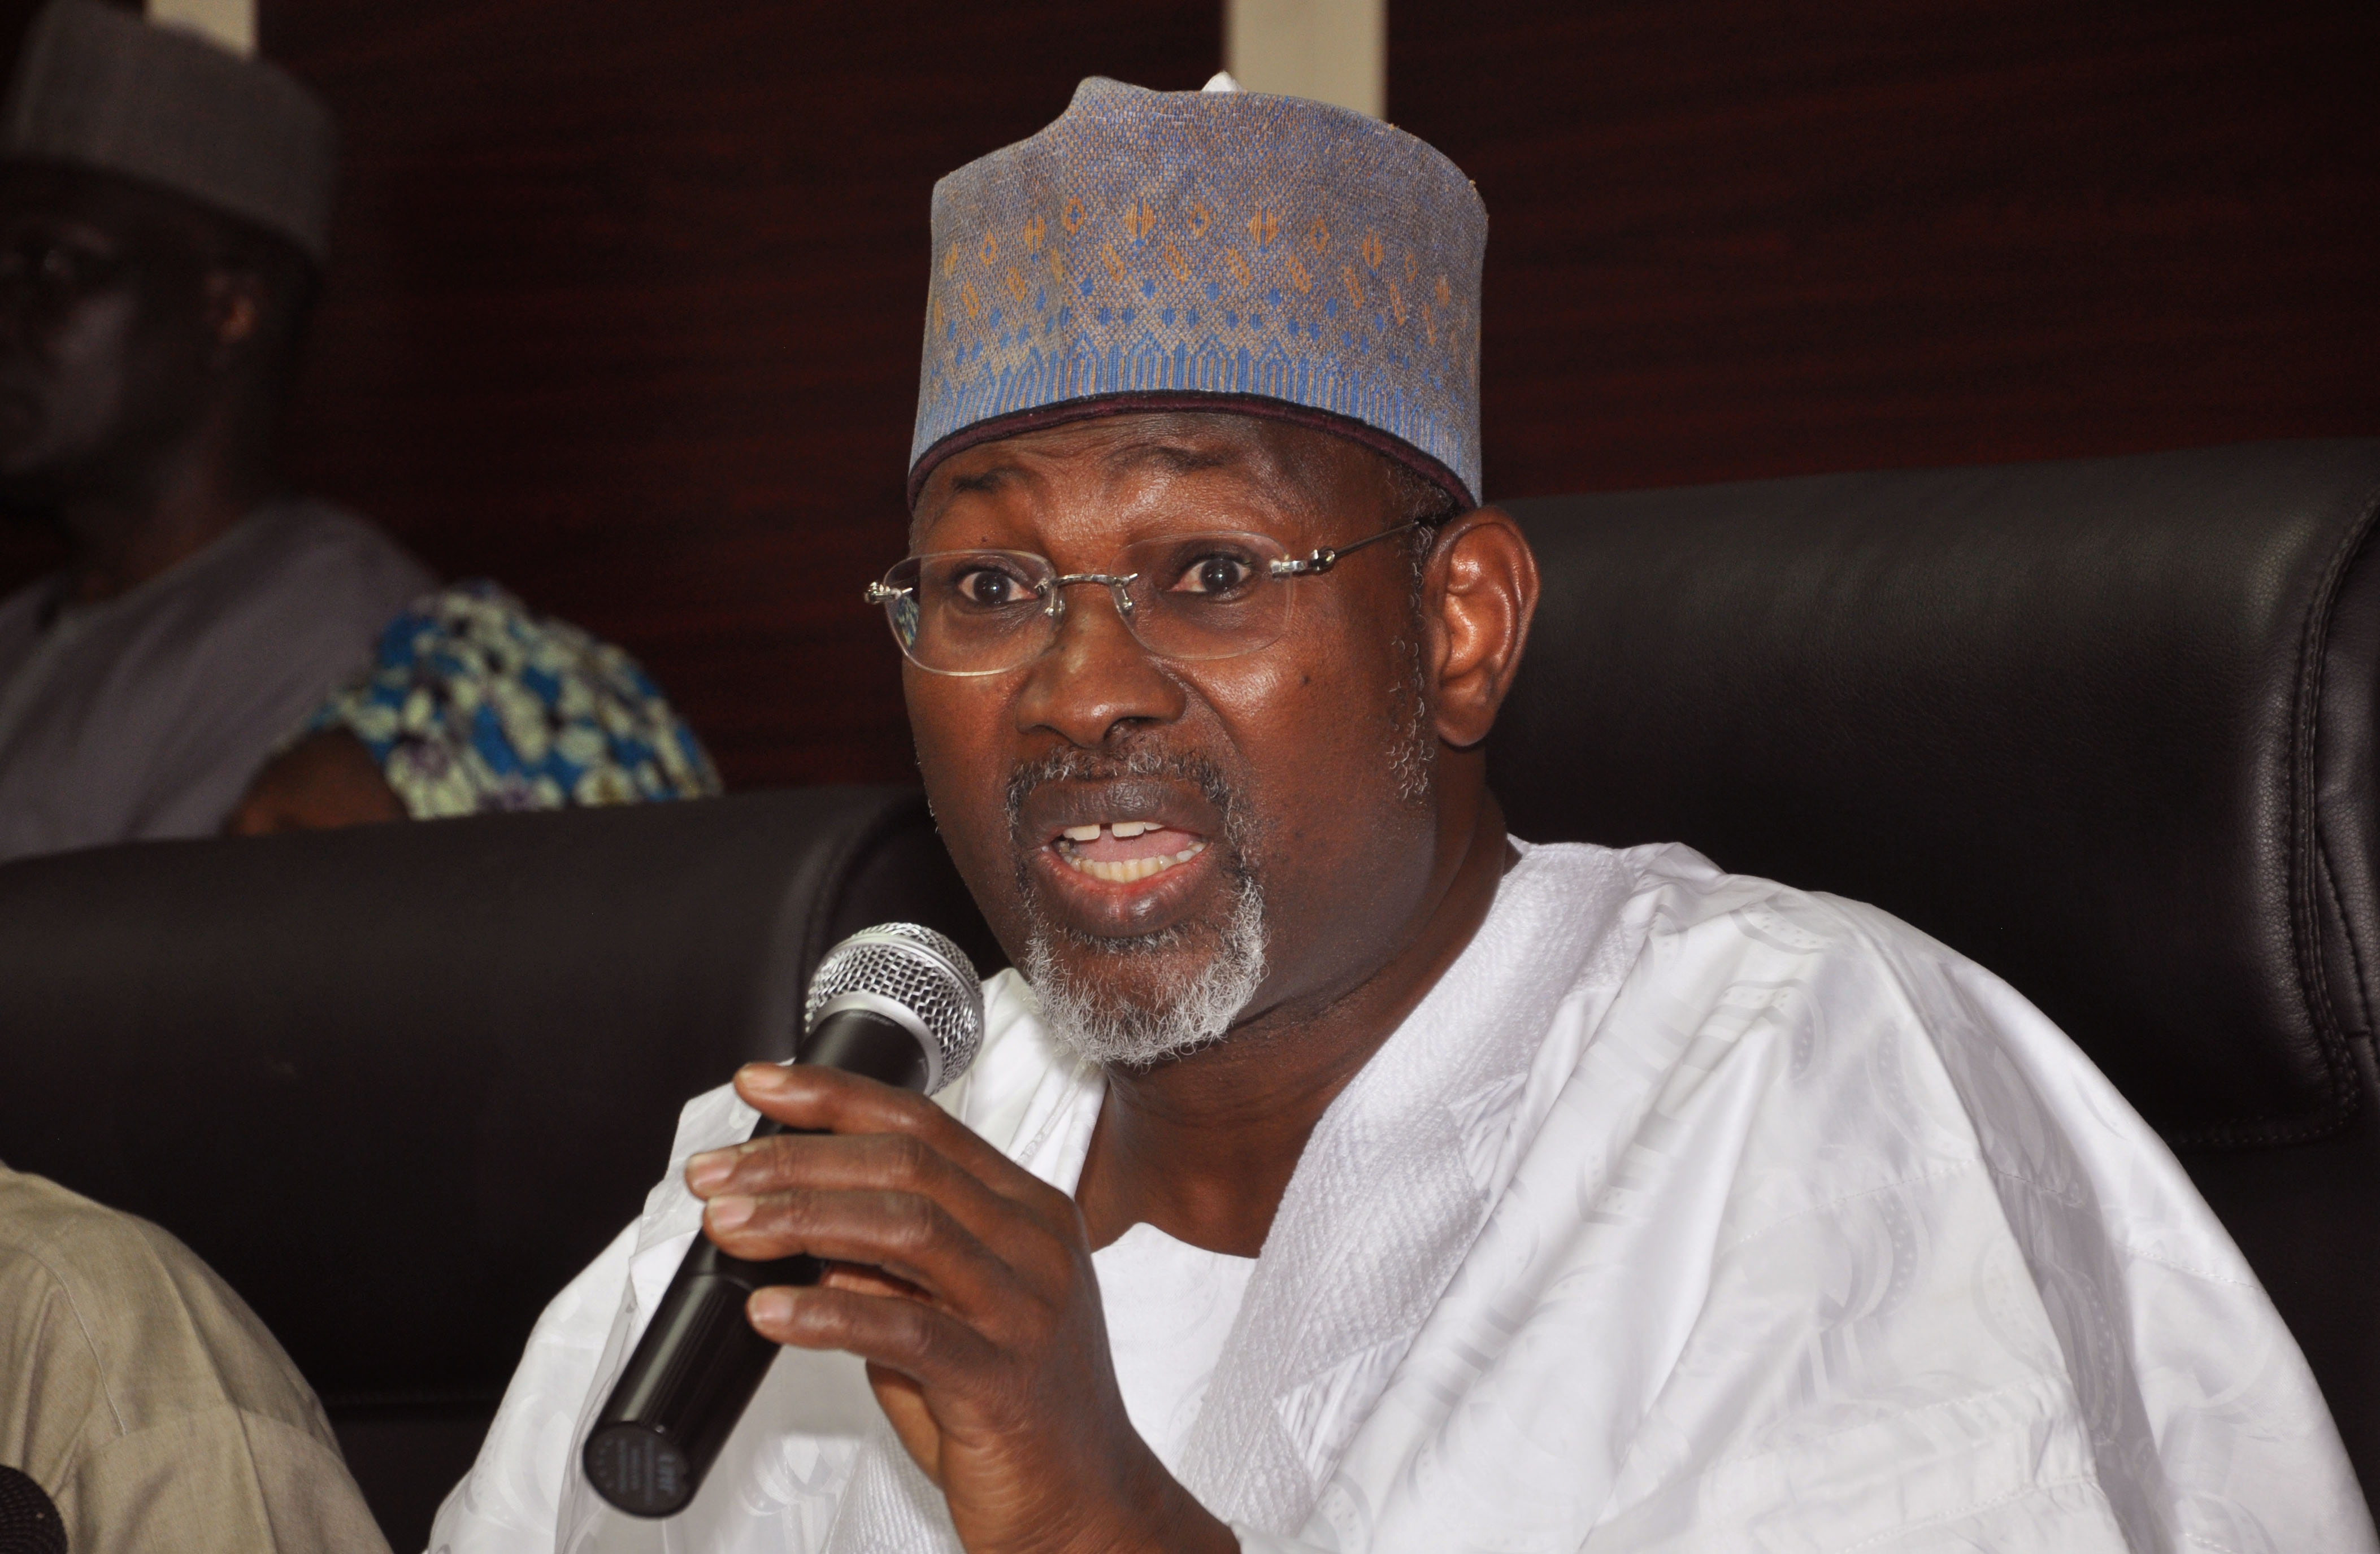 Independent National Electoral Commission Chairman, Attahiru Jega, speak during a news conference Saturday night as the Nigerian Elections postponement is announced  in the city of Abuja, Nigeria, Saturday, Feb. 7, 2015. Nigeria is postponing presidential and legislative elections until March 28 because security forces fighting Boko Haram extremists cannot ensure voters' safety around the country, the electoral commission announced Saturday in a decision likely to infuriate the opposition. (AP Photo/Olamikan Gbemiga)